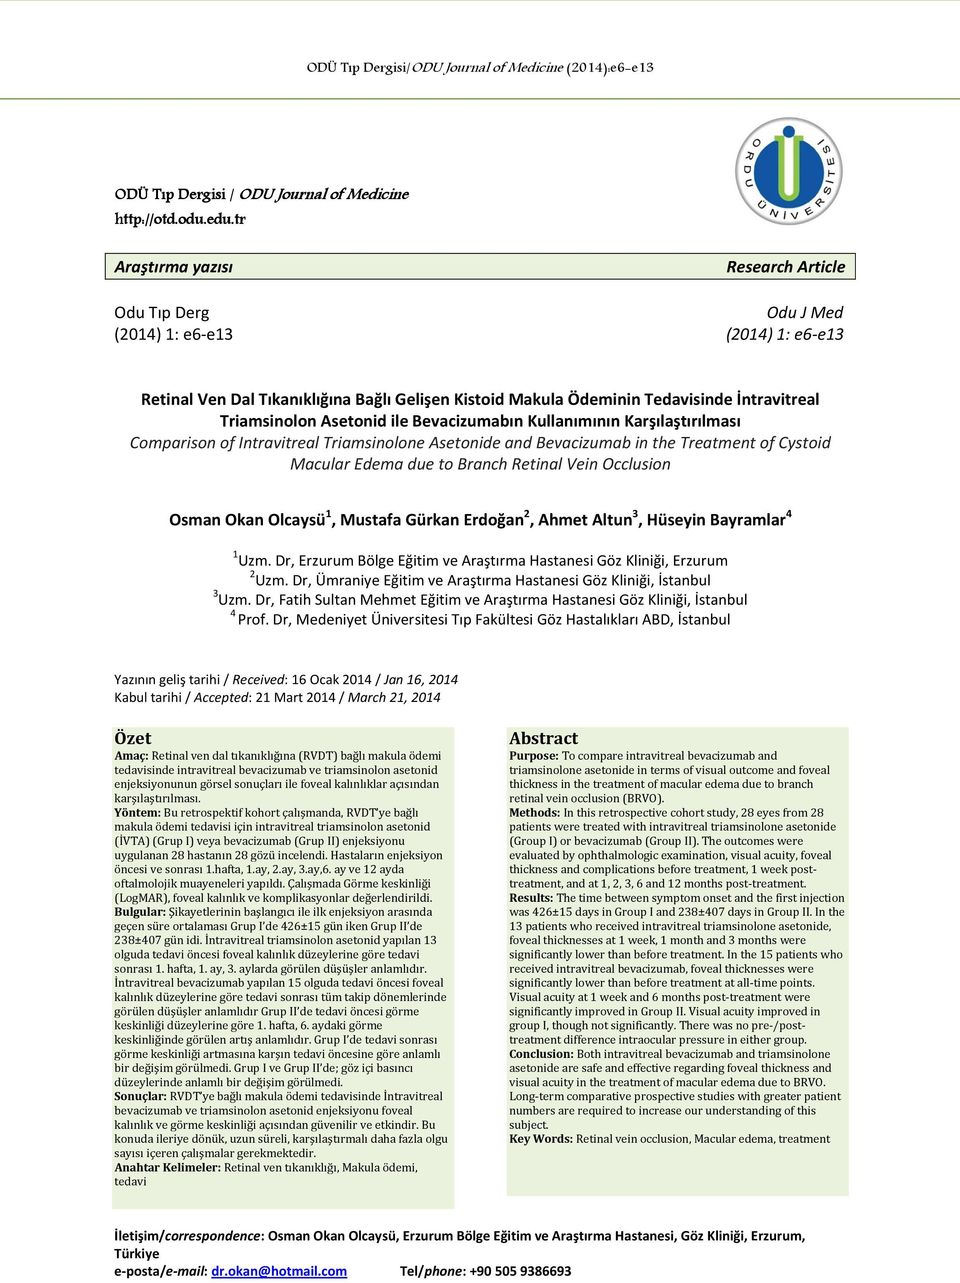 Asetonid ile Bevacizumabın Kullanımının Karşılaştırılması Comparison of Intravitreal Triamsinolone Asetonide and Bevacizumab in the Treatment of Cystoid Macular Edema due to Branch Retinal Vein